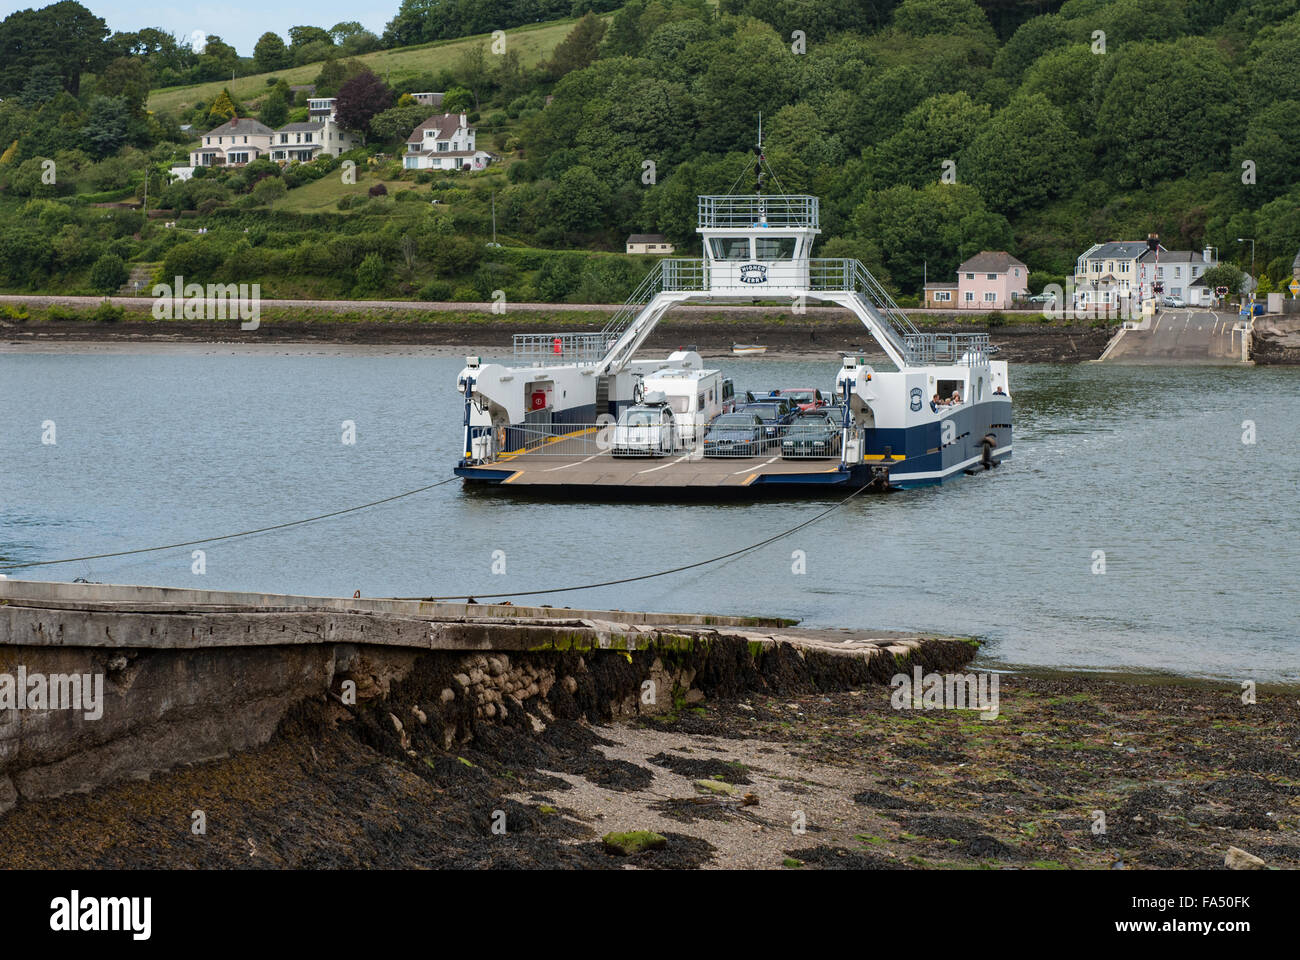 The Higher Ferry on the River Dart at Dartmouth, Devon, England, UK - Stock Image